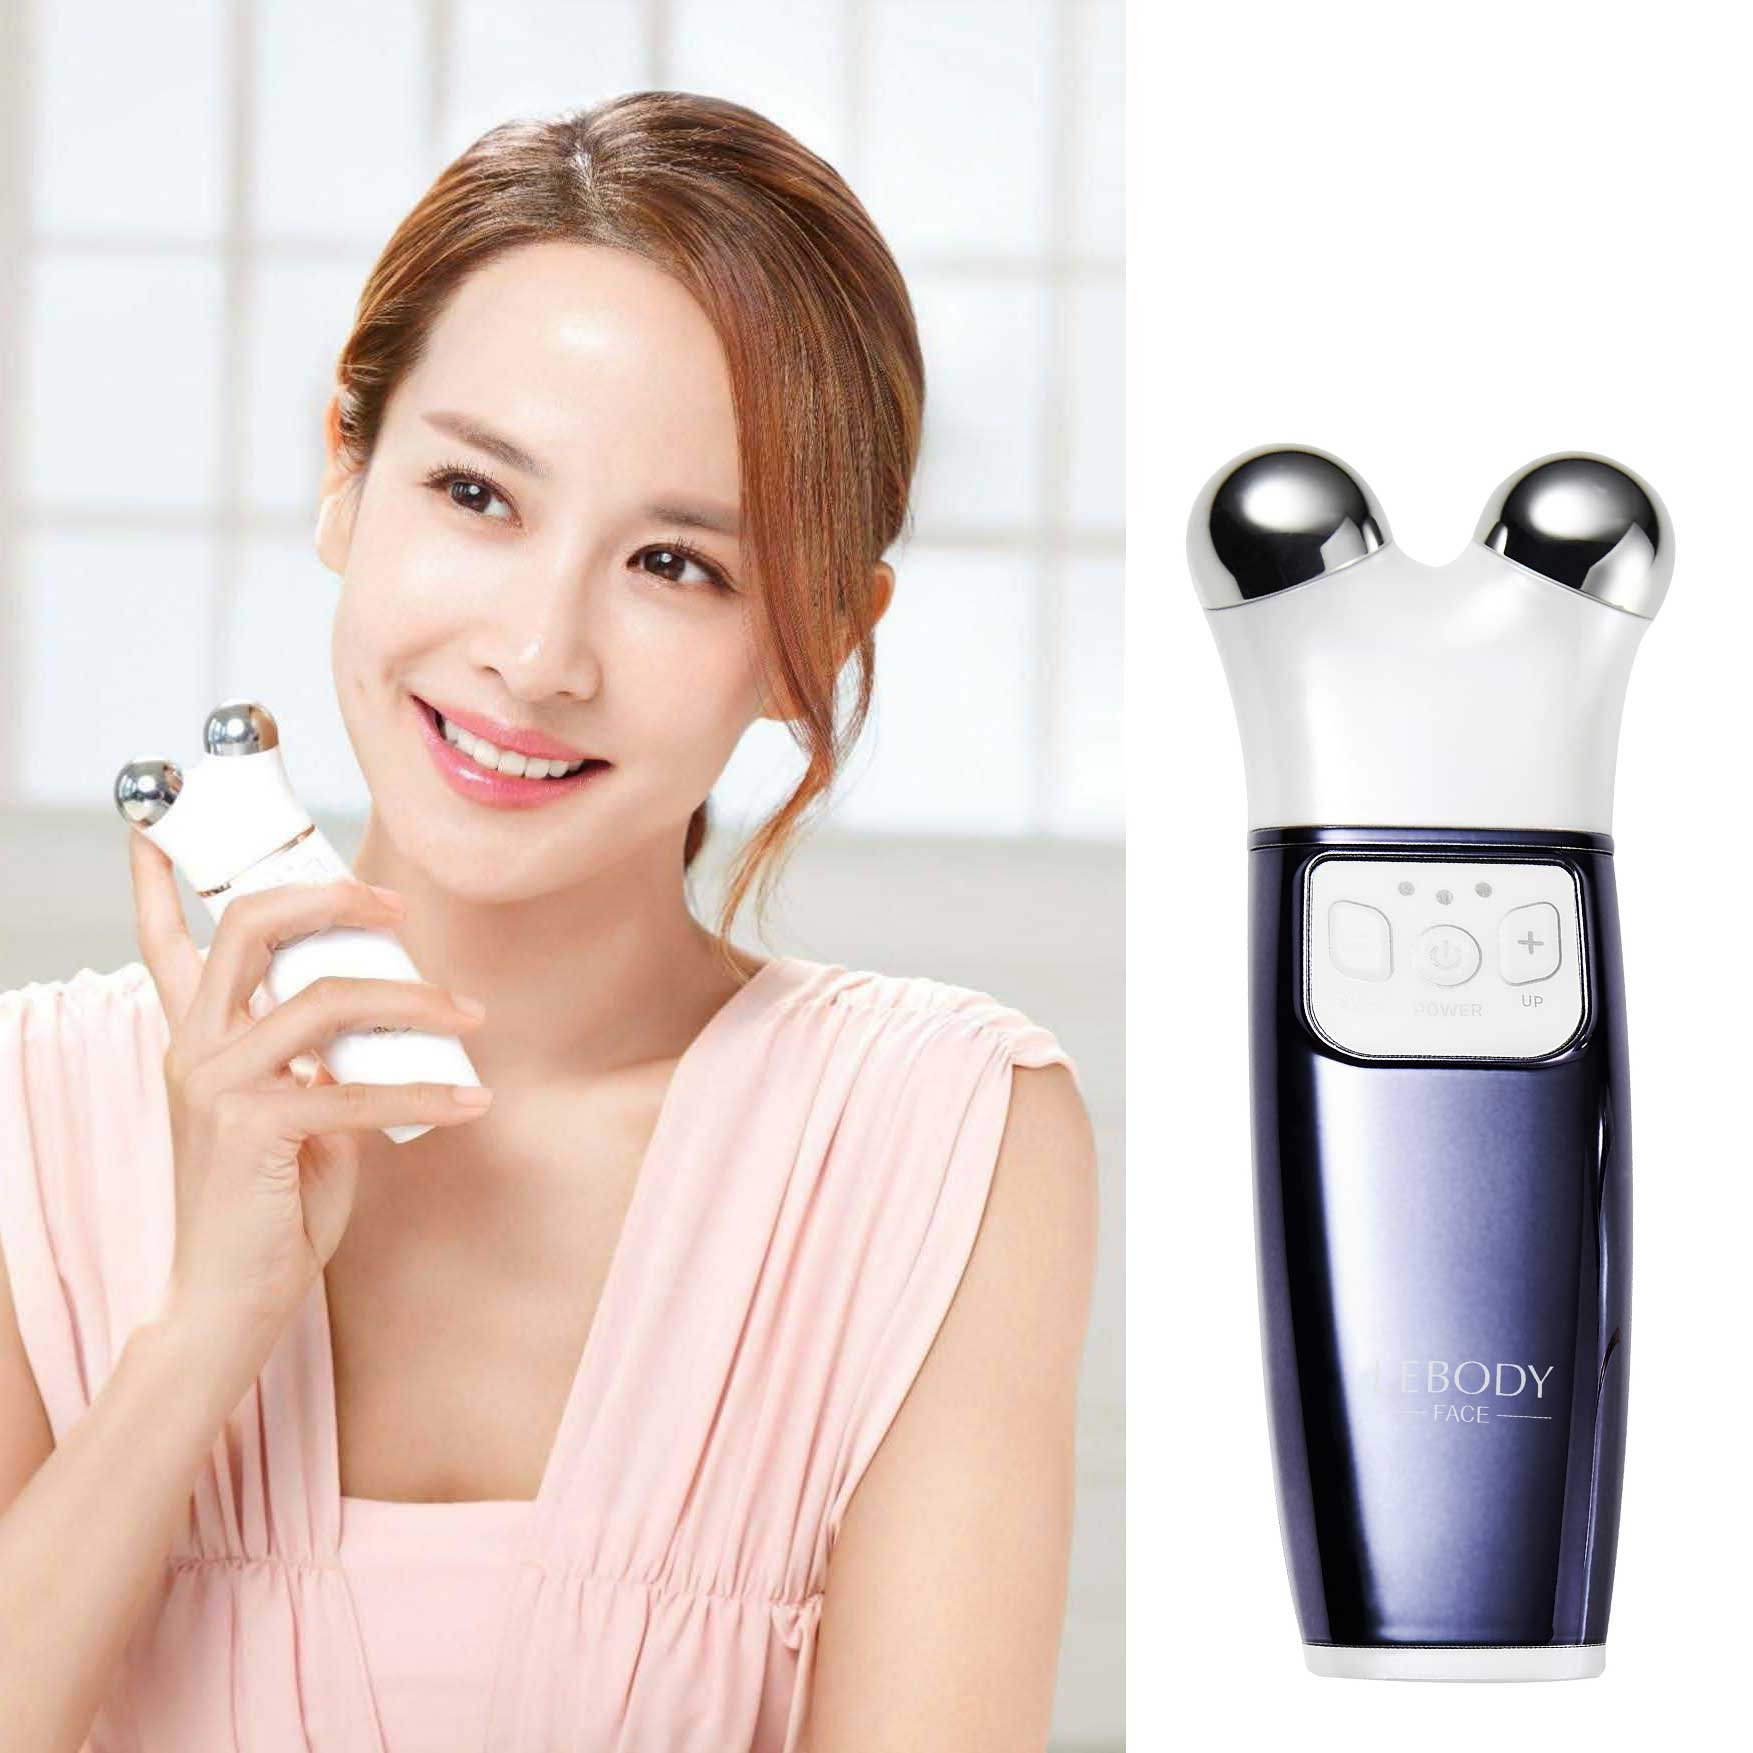 LEBODY FACE Micro-current Generator Facial Toning Device Home Skin Care Massager (BLUE)